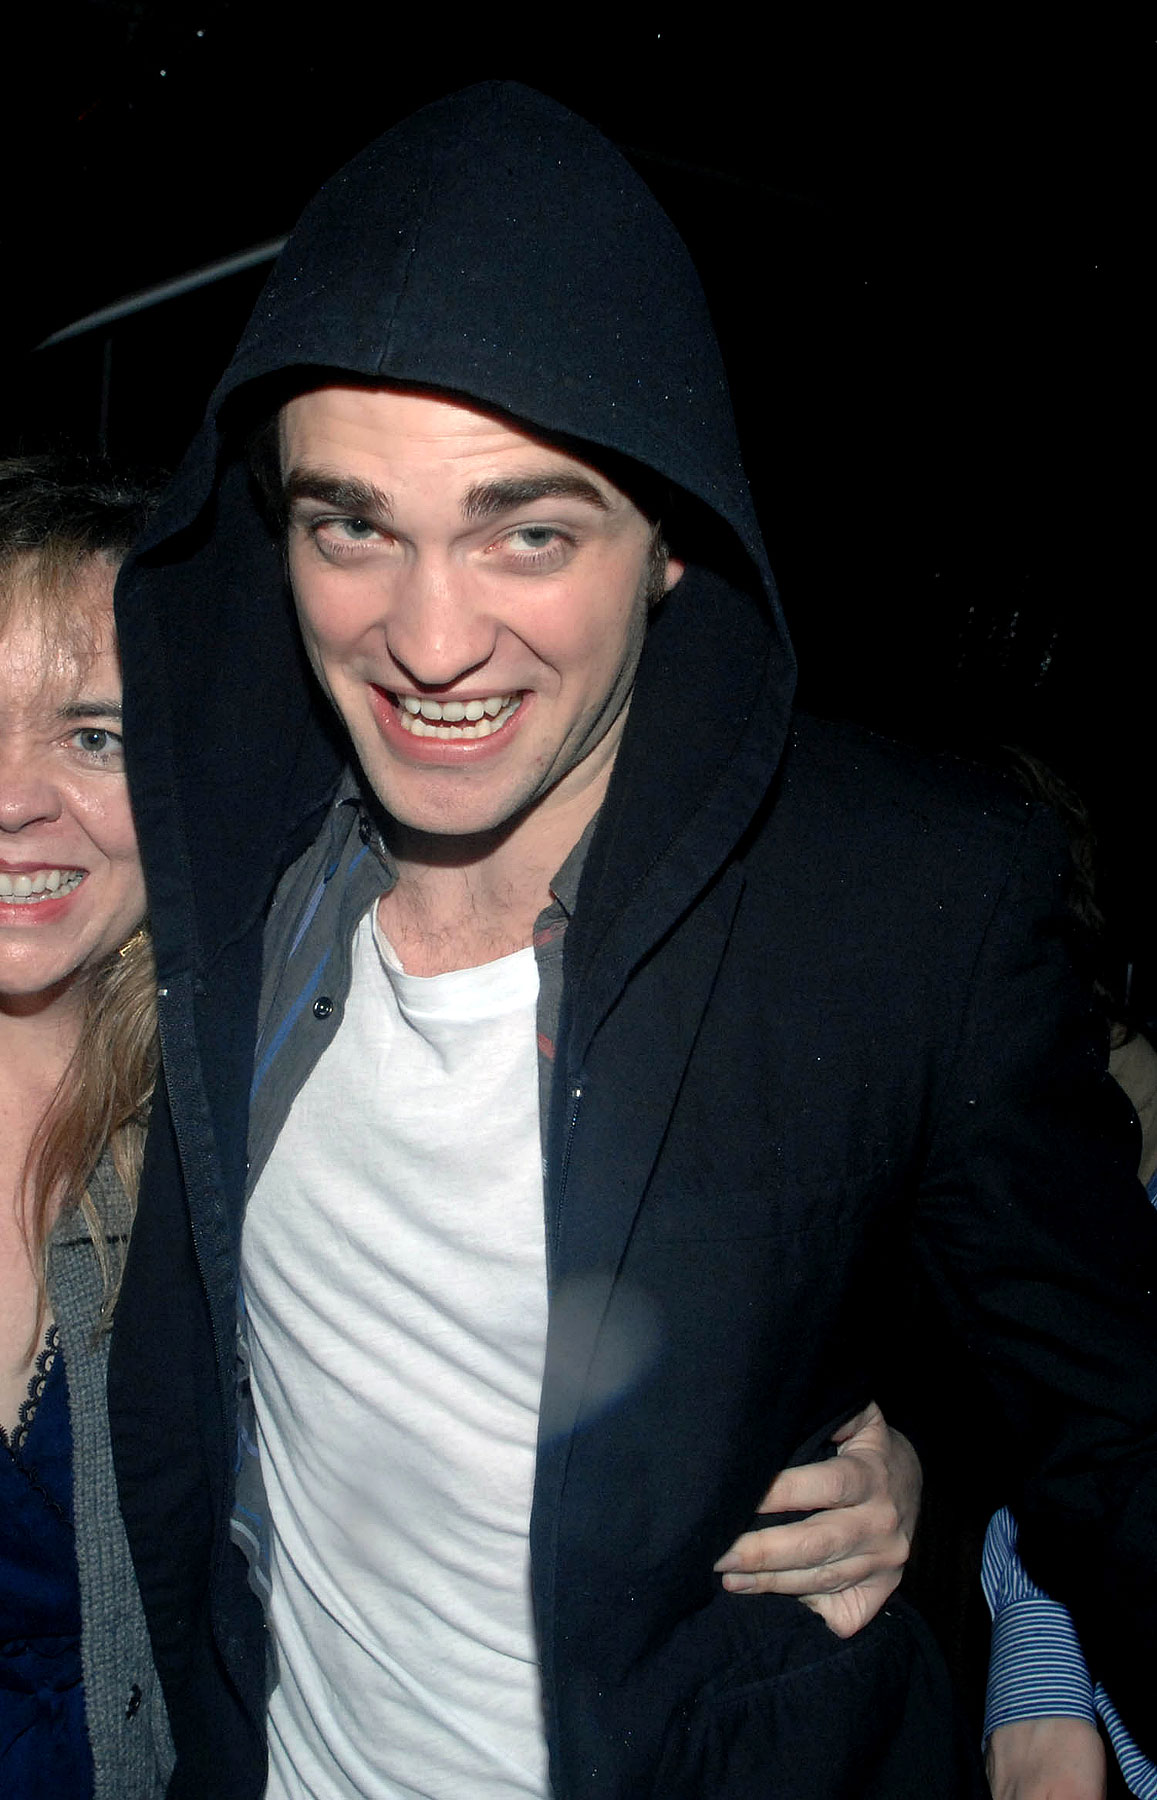 Robert Pattinson 'Spends $1000 on New Bike'